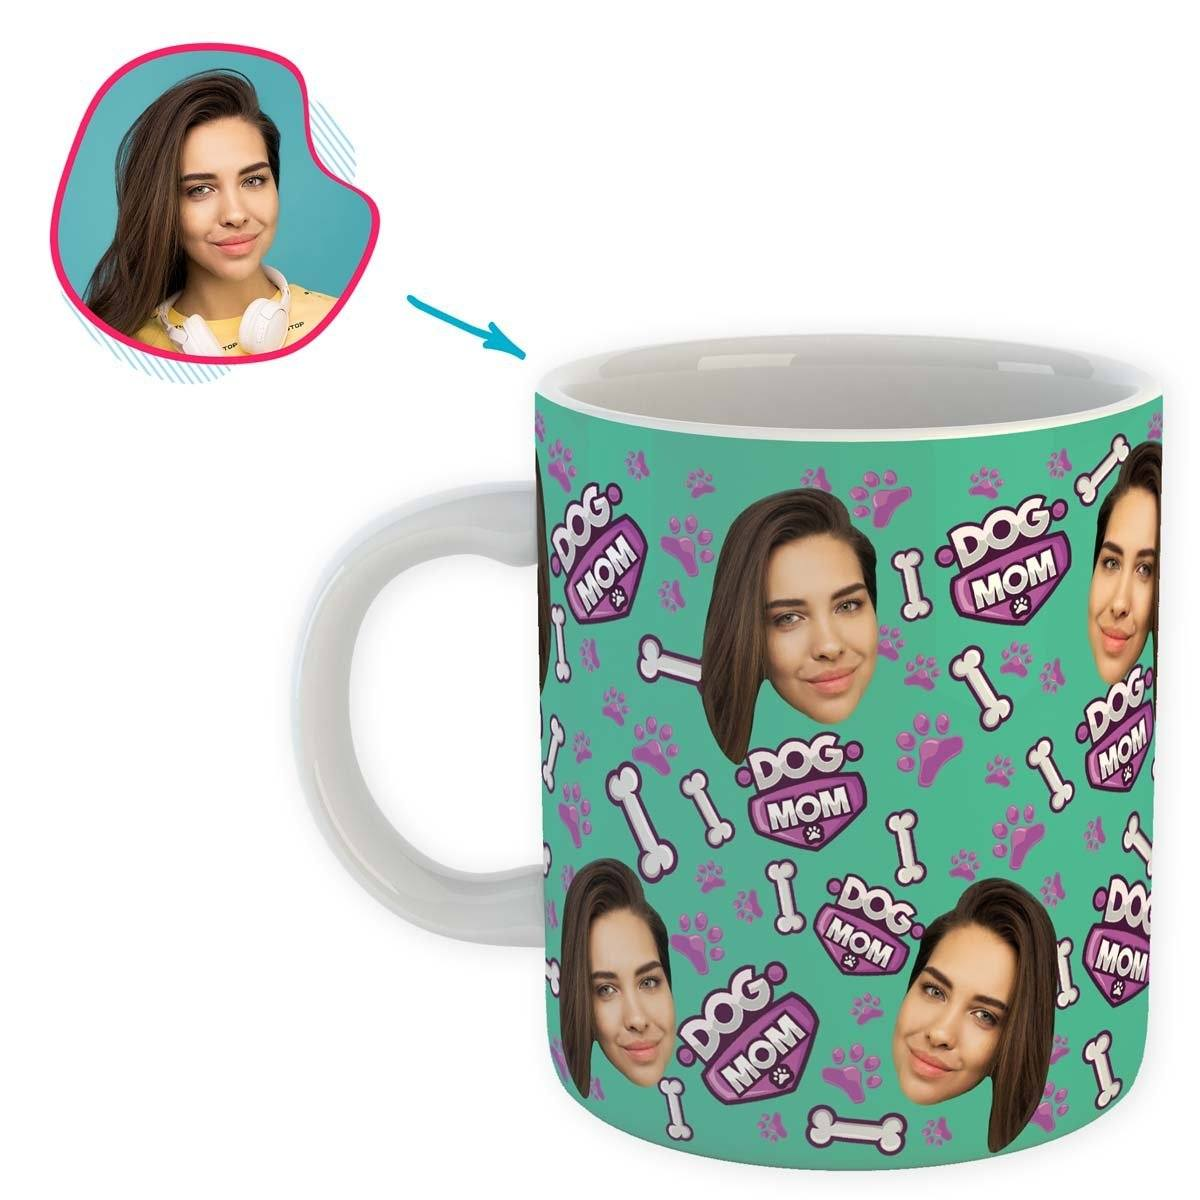 mint Dog Mom mug personalized with photo of face printed on it